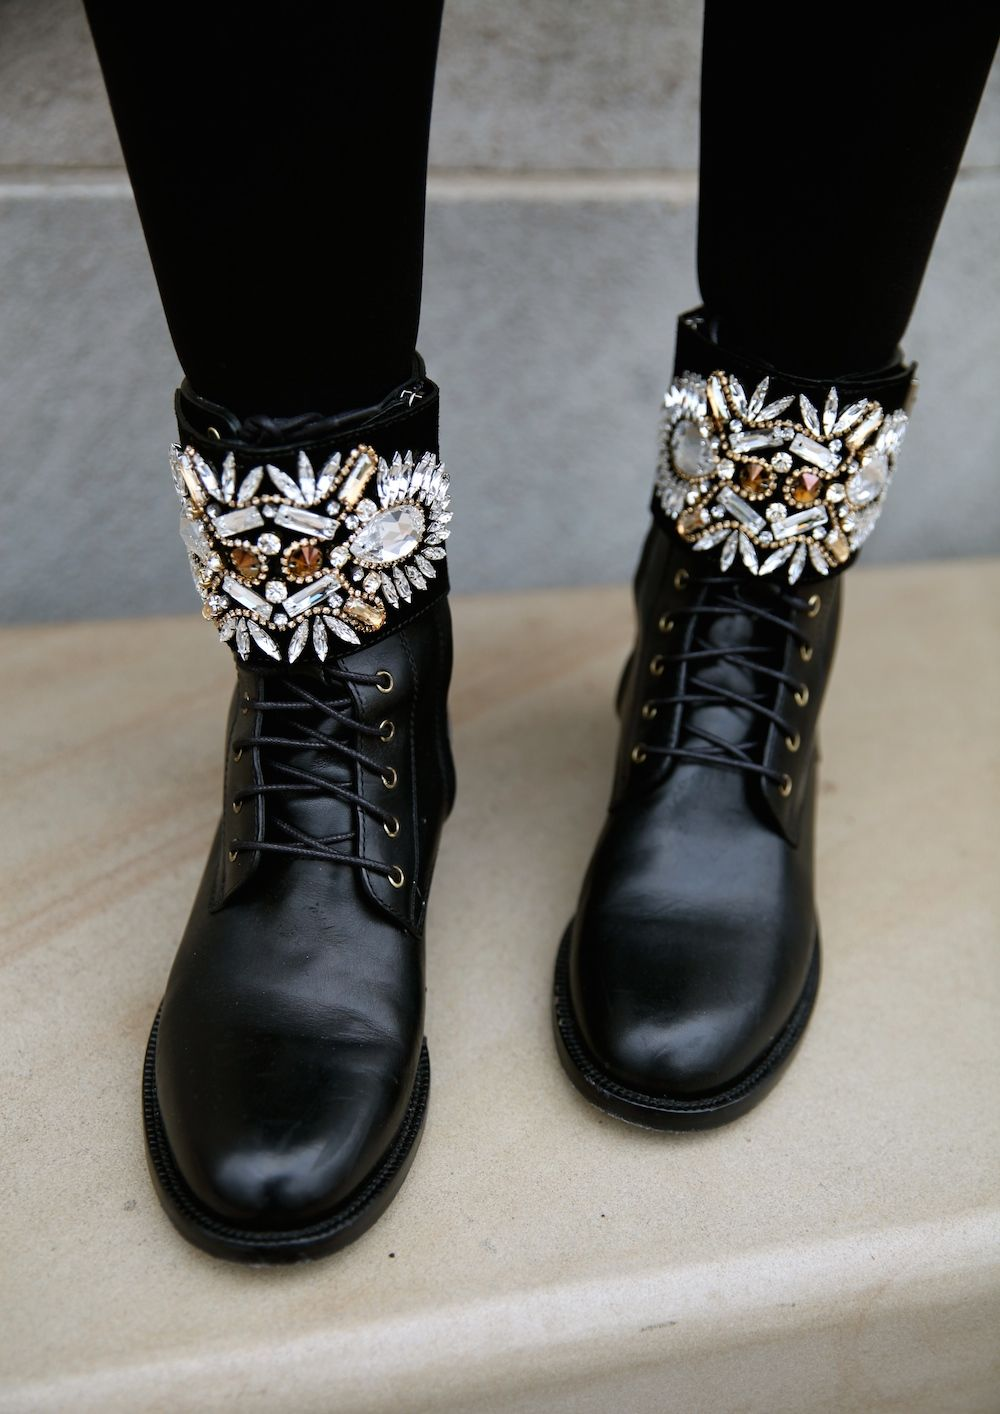 Crystal combat boots by Rene Caovilla. Leather ...